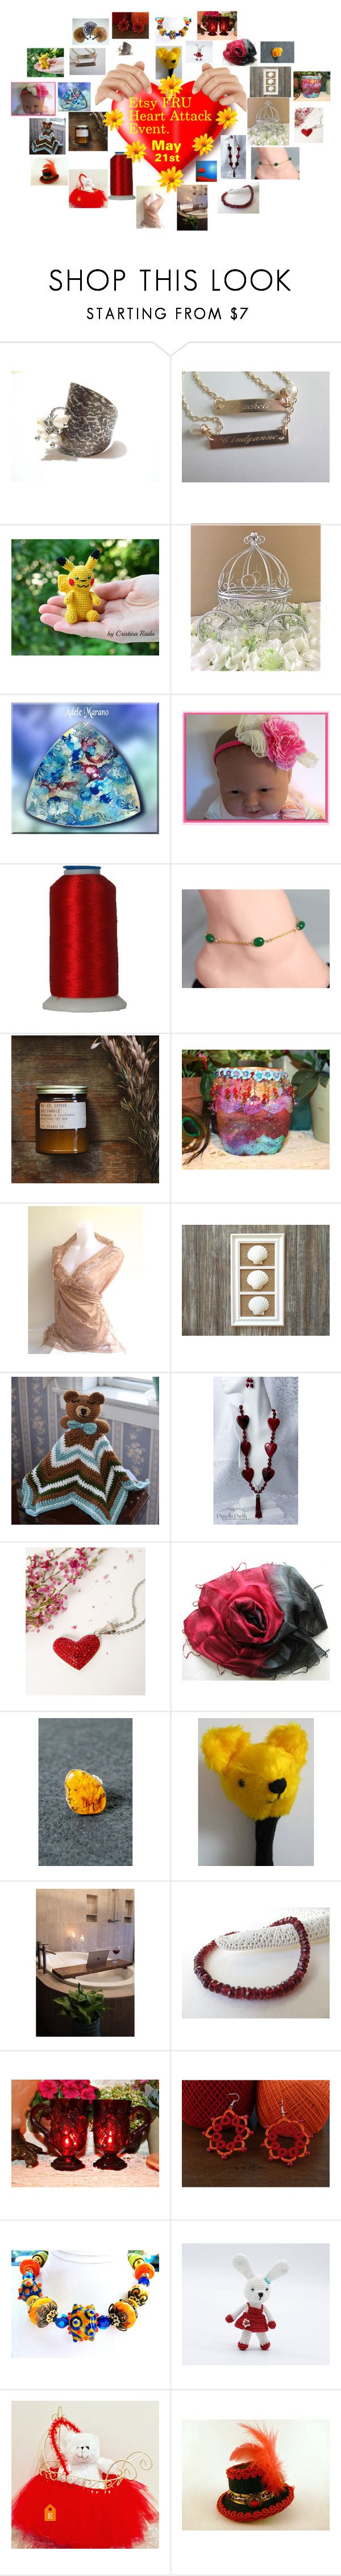 Etsy FRU Heart Attack Event May 21st !!!!!!! by zebacreations on Polyvore featuring Scialle and Avon